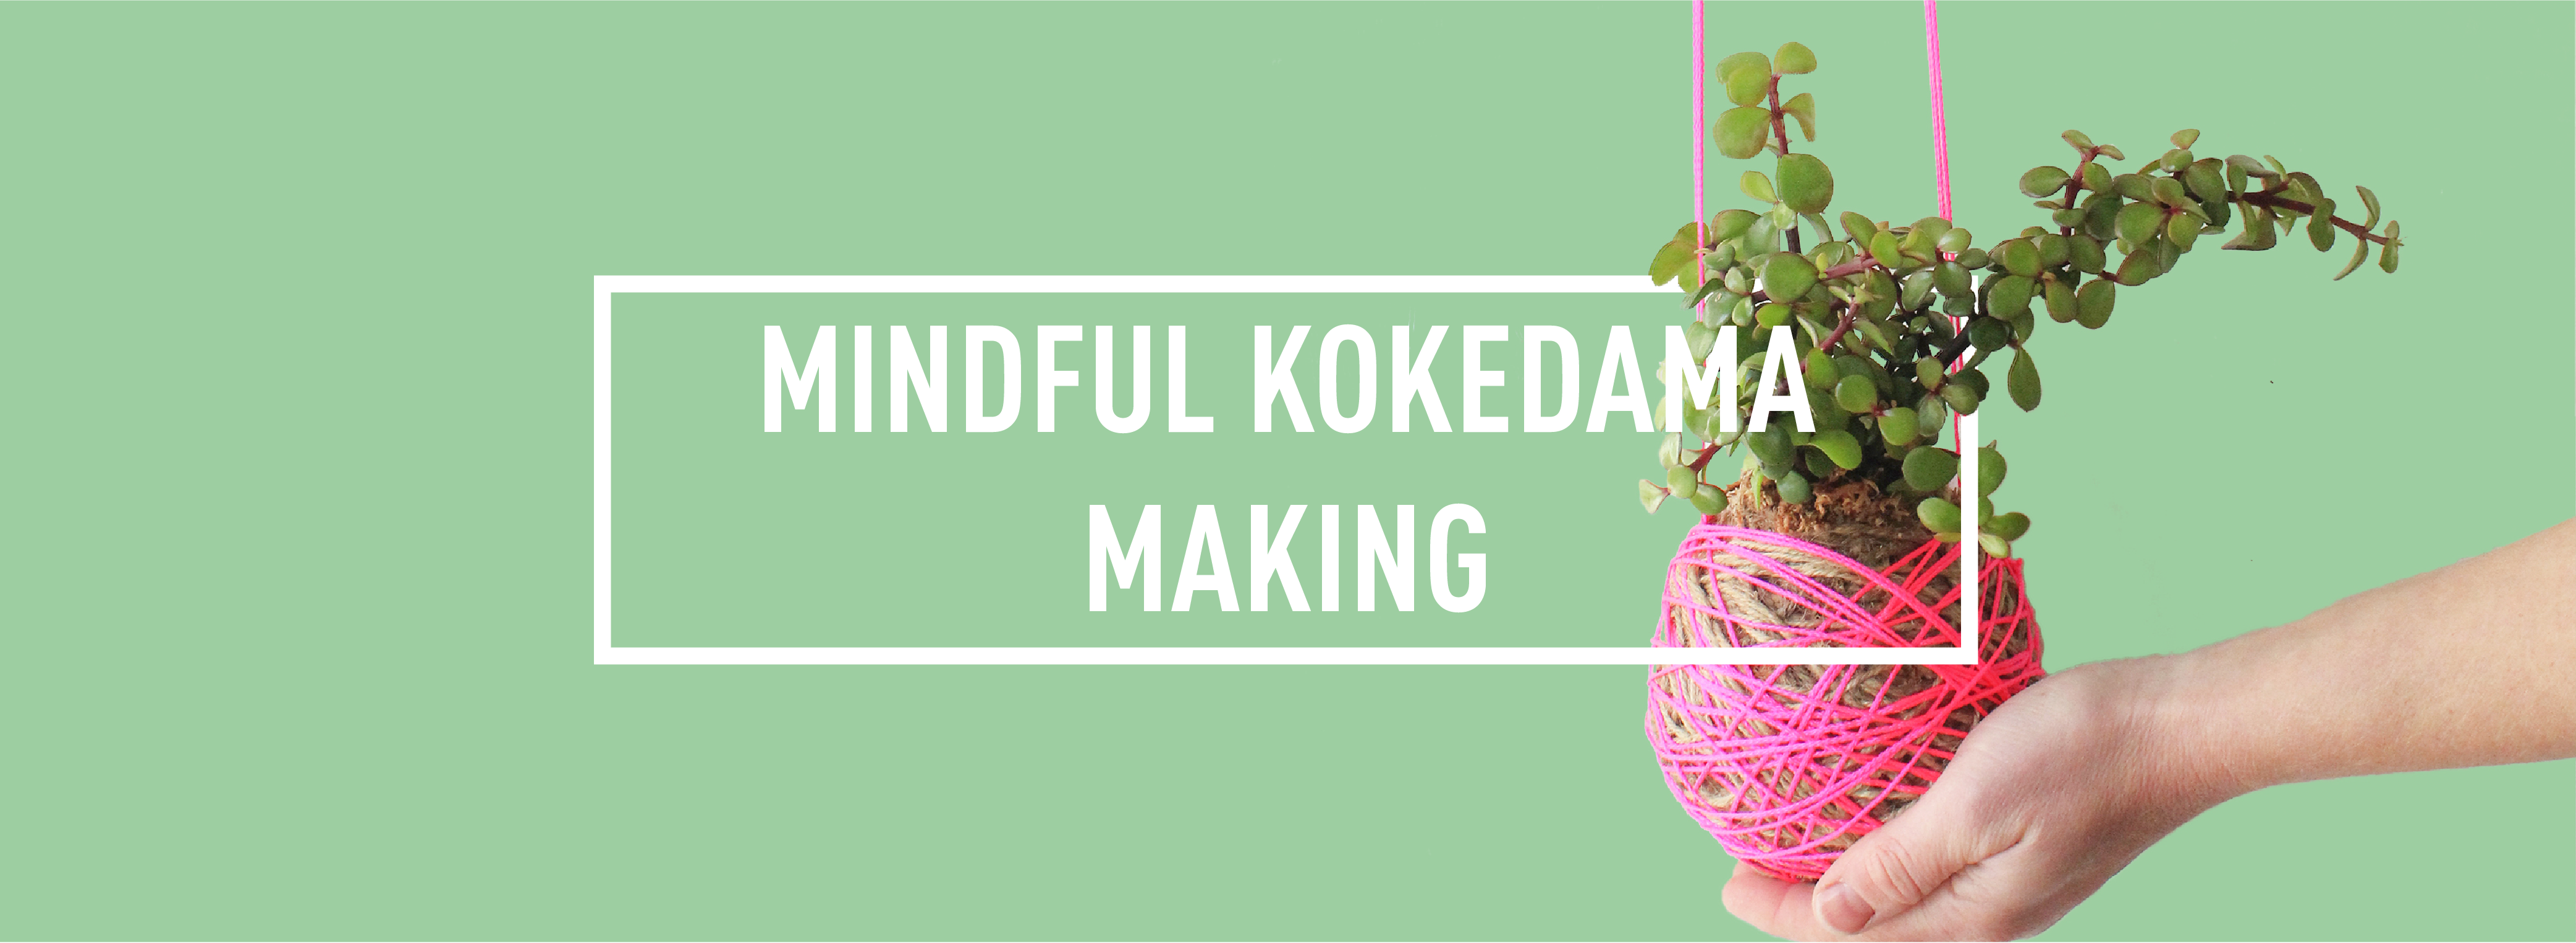 MINDFUL KOKEDAMA MAKING_Webpage Header